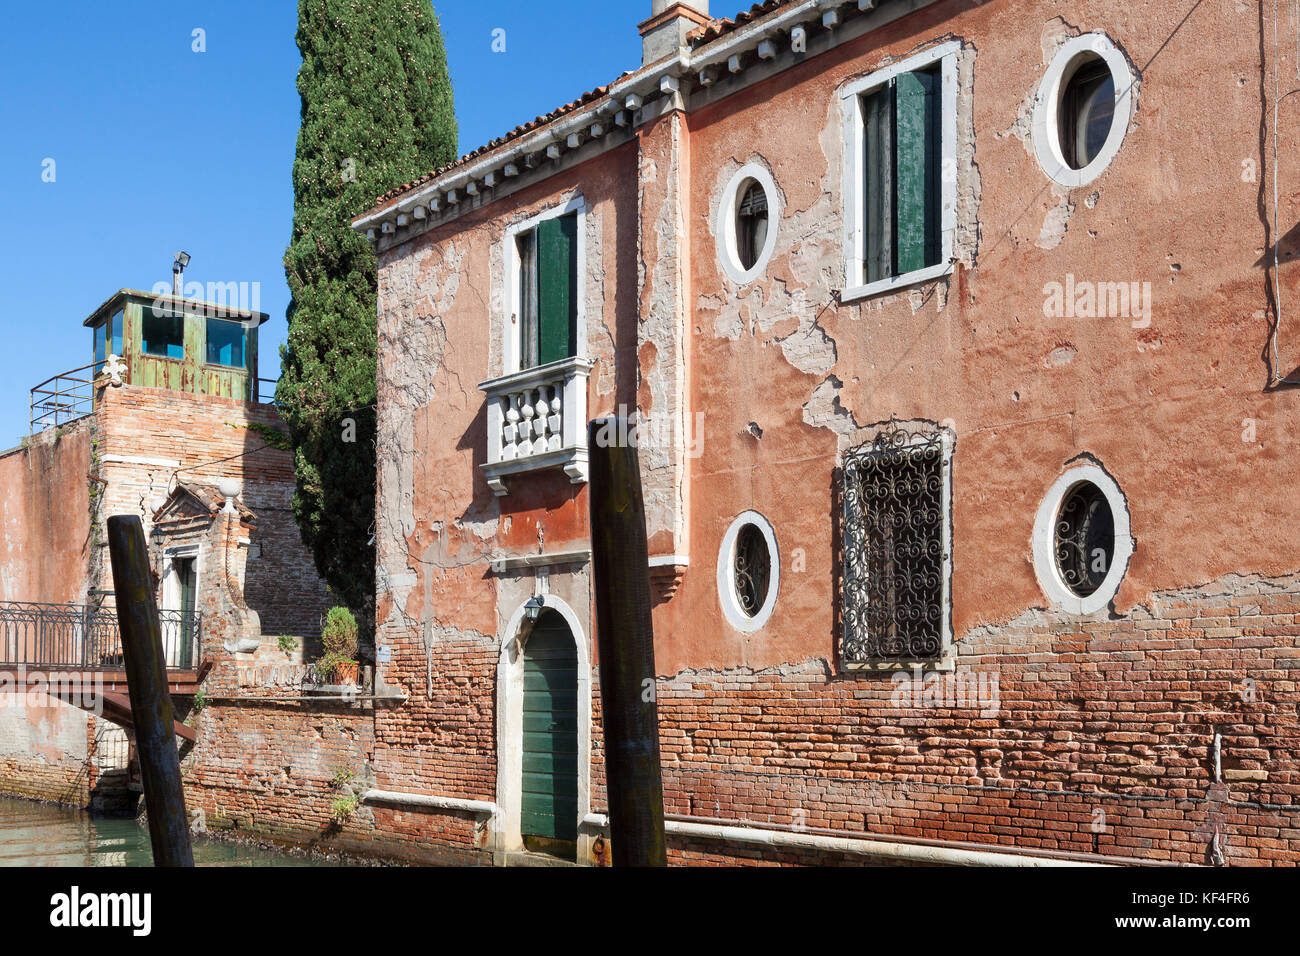 Cana Windows Architectural Detail Of An Ancient House Giudecca Venice Italy